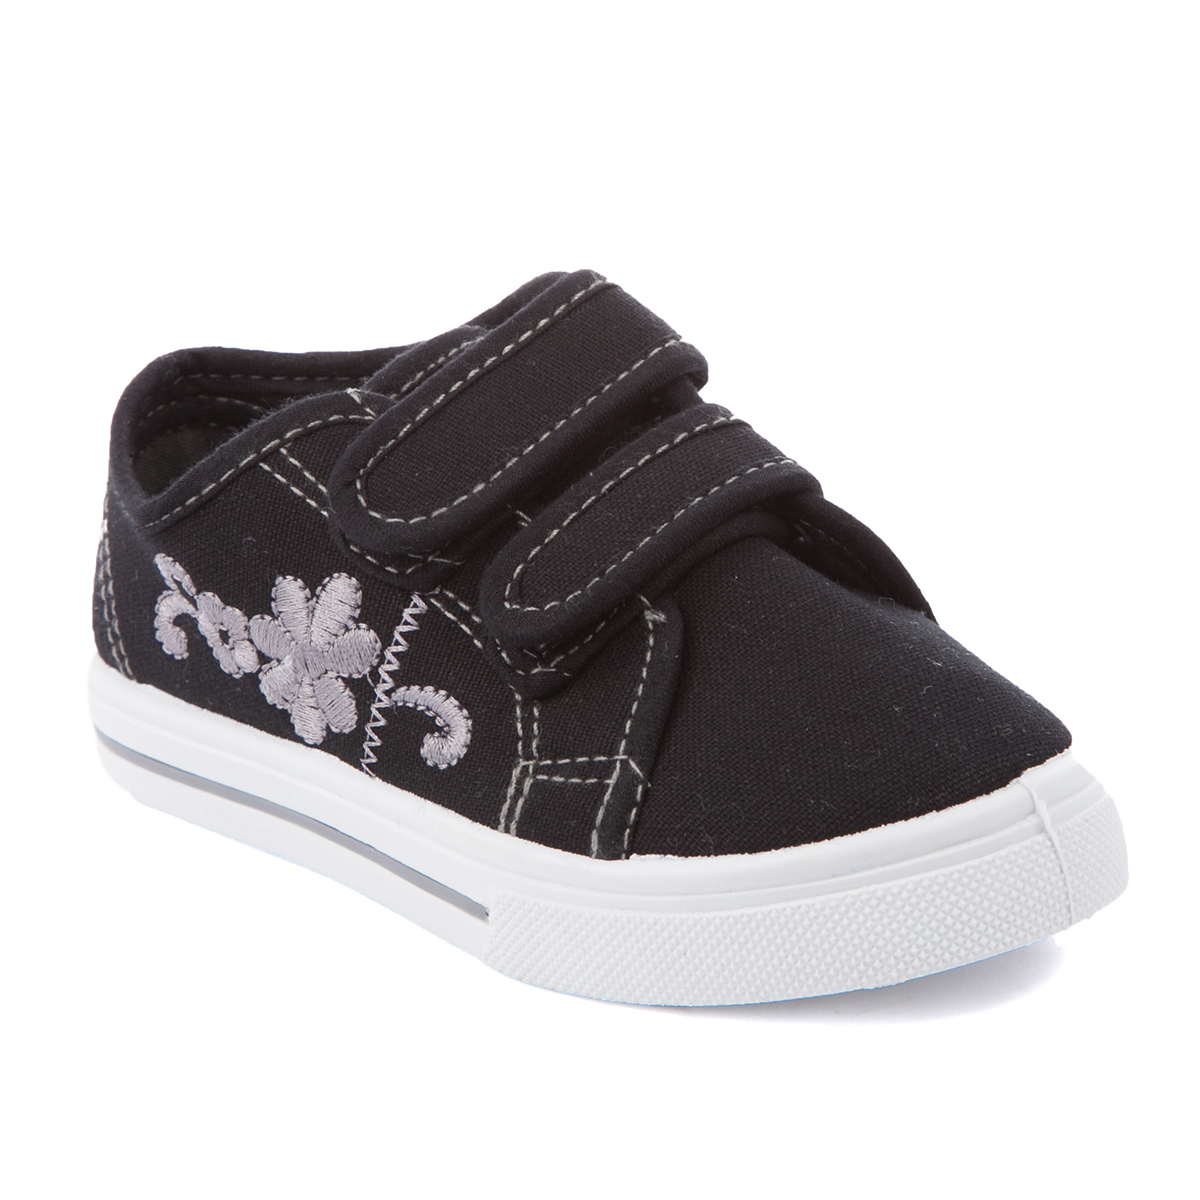 toddler low top canvas shoes velcro sneakers tennis